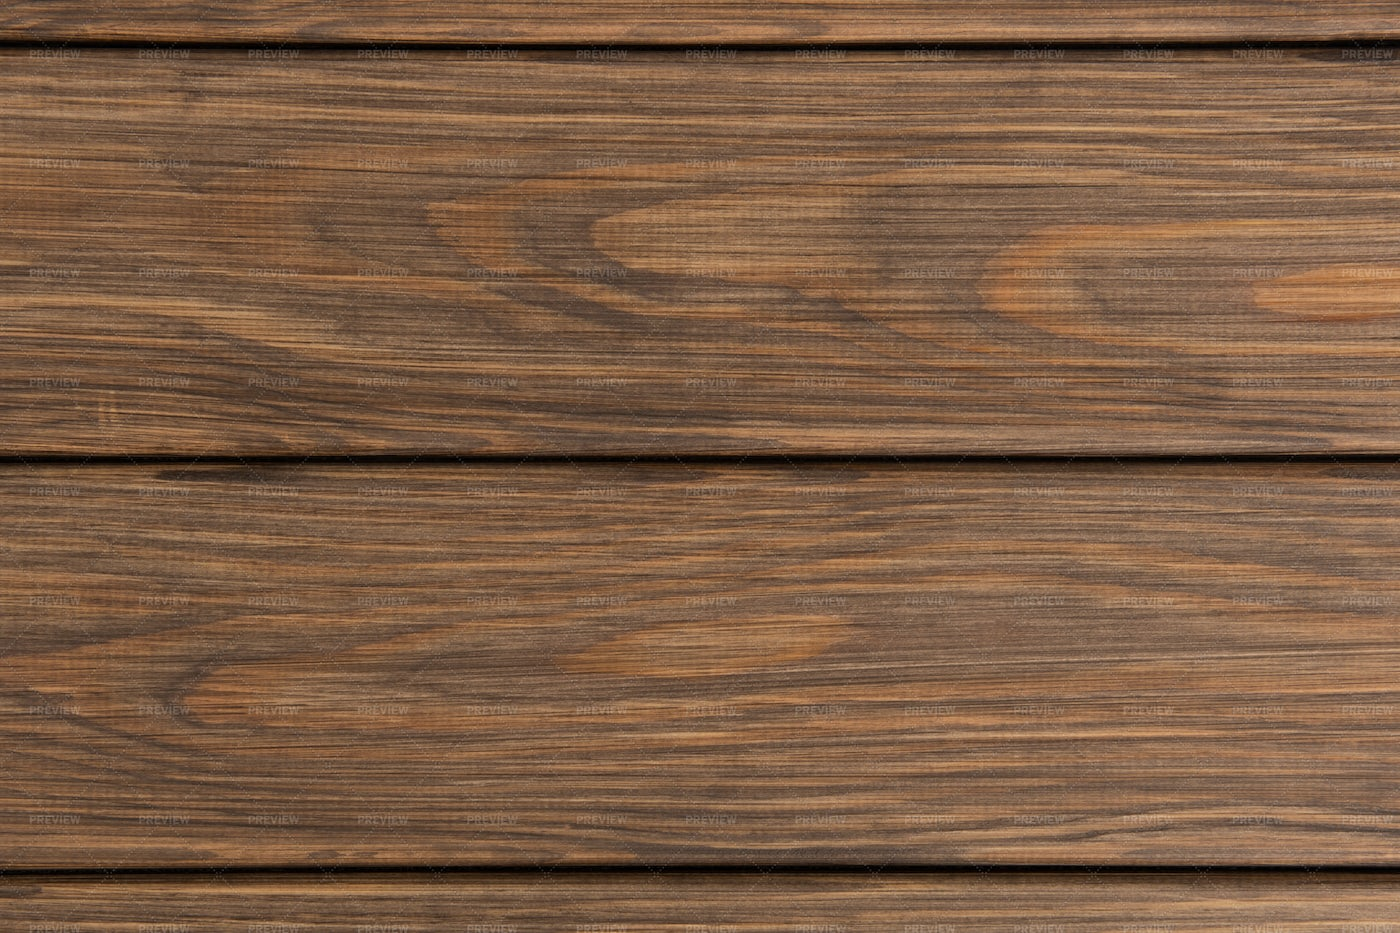 Brown Wooden Planks: Stock Photos